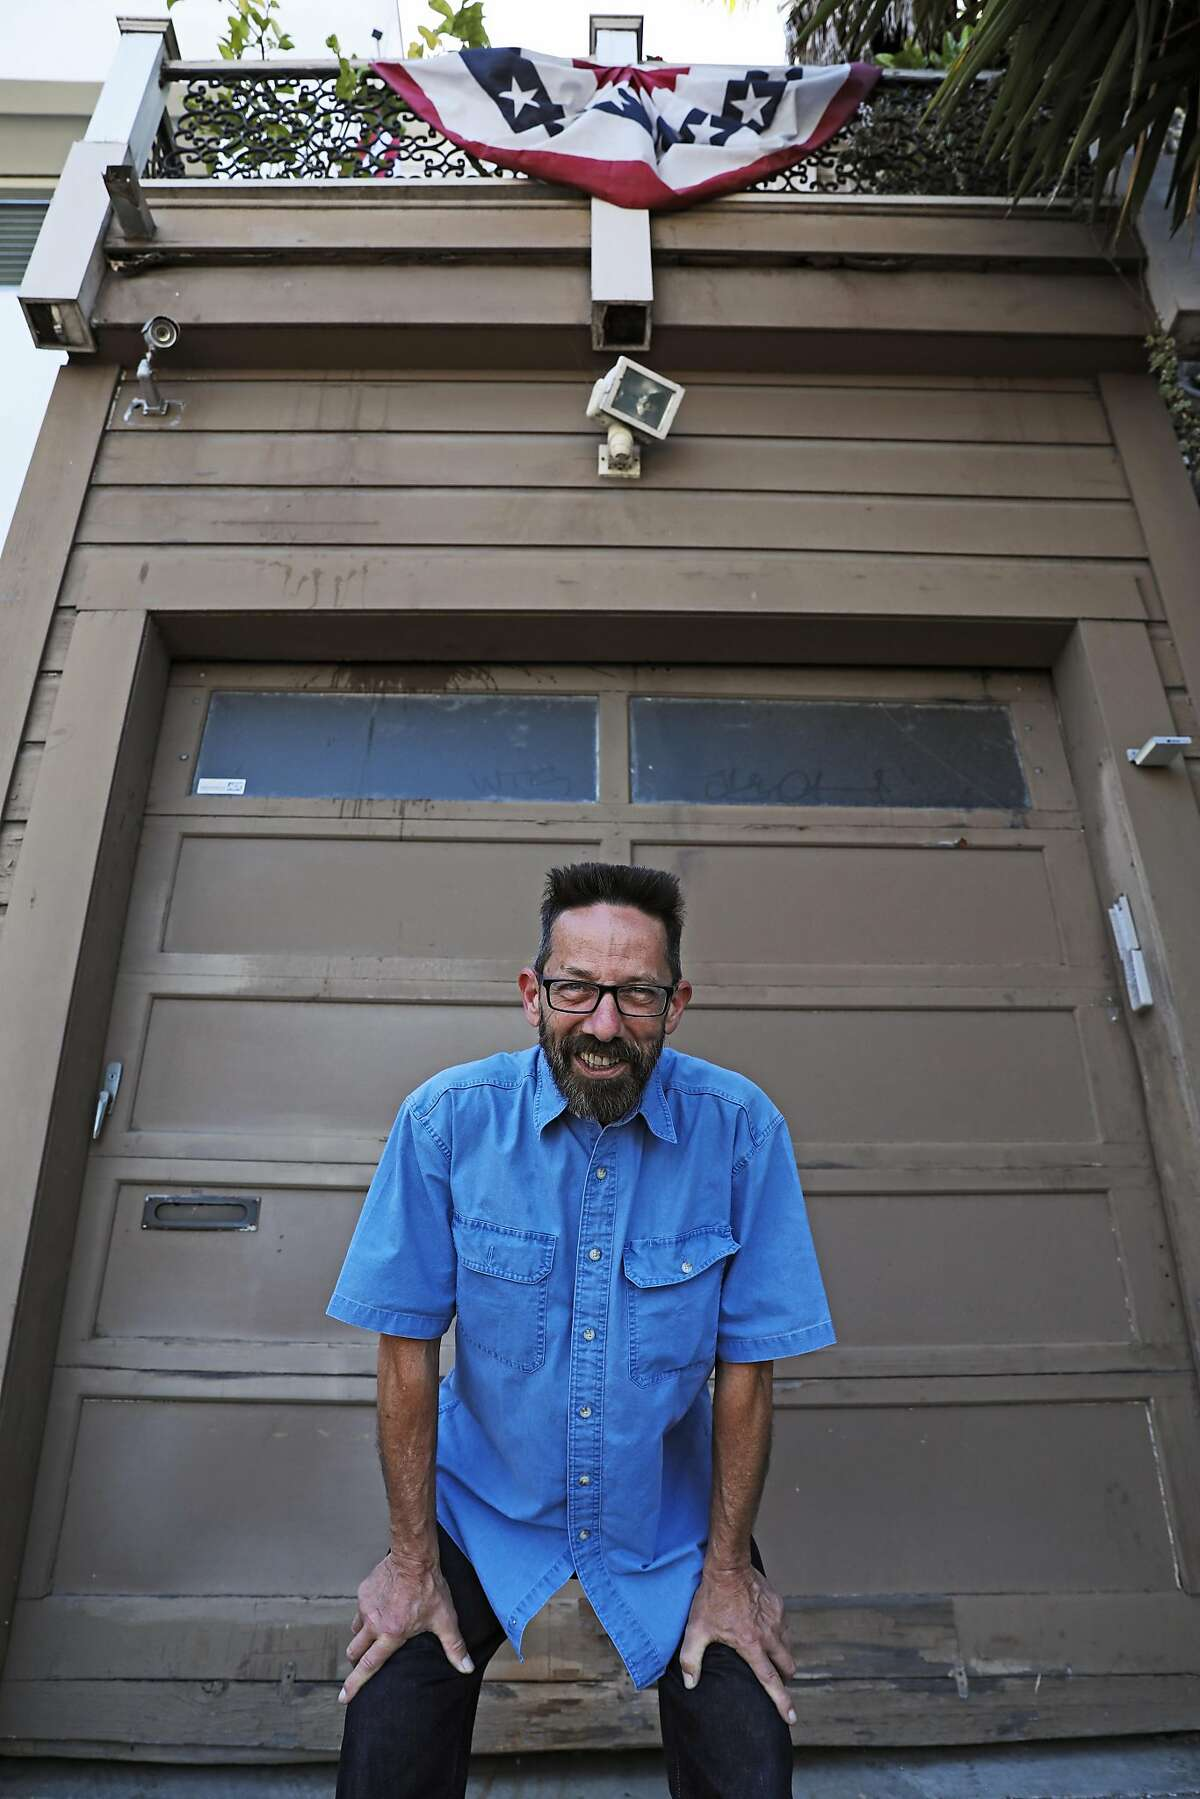 Jo Babcock stands in front of 1002 Pennsylvania Ave. on Thursday, July 12, 2018, in San Francisco, Cali. Babcock, a photographer, took an iconic image of the house, an old Victorian, right next to a huge gas storage tank. The tank is gone, but the house remains.